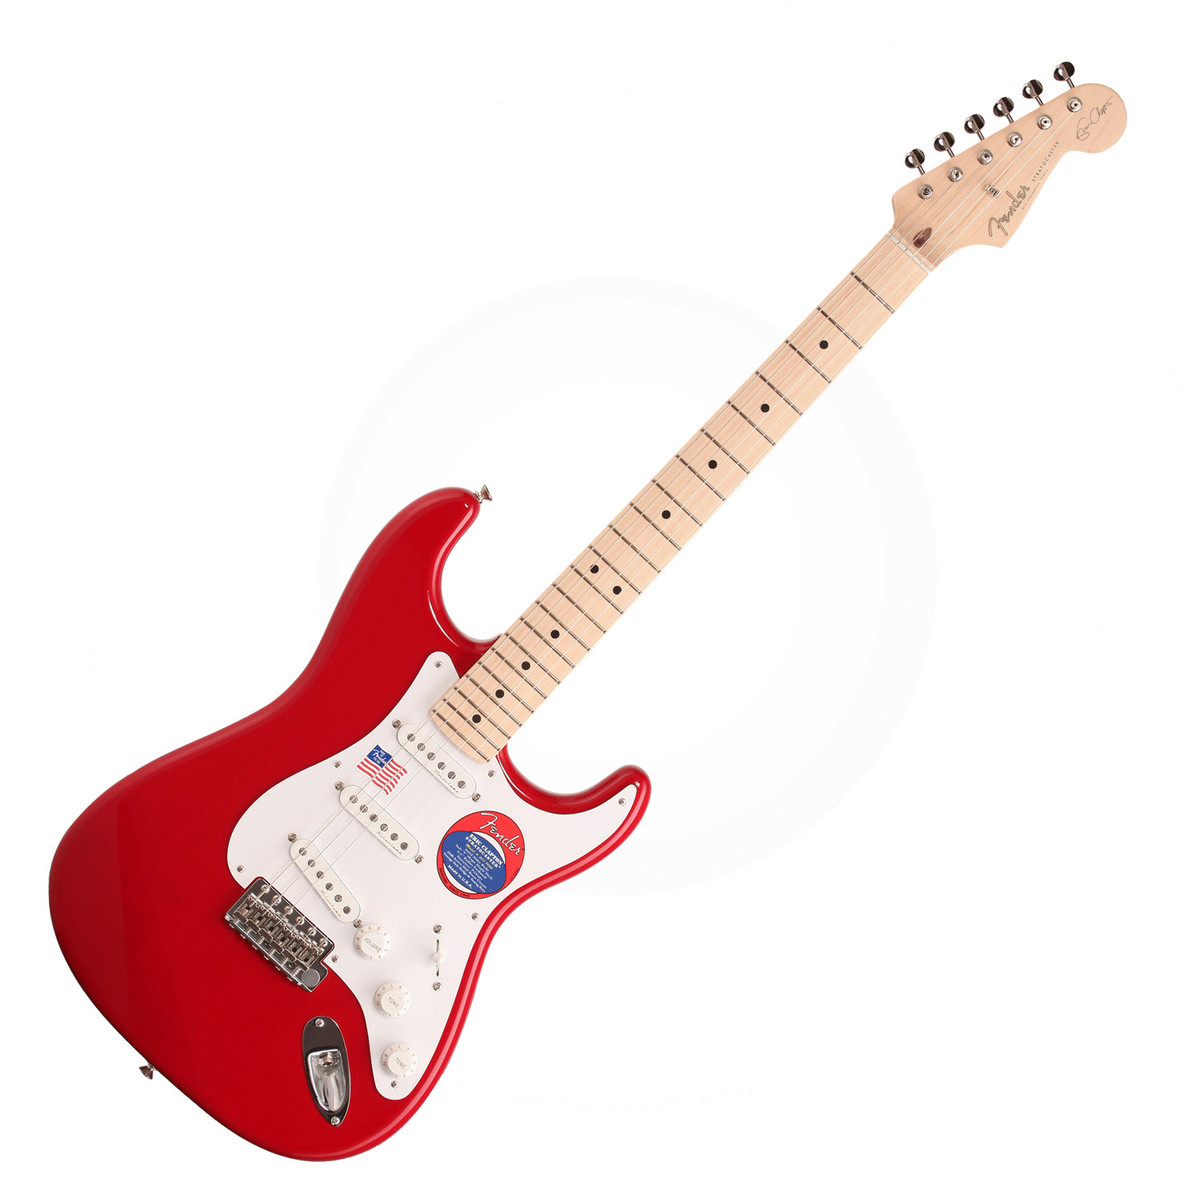 fender eric clapton stratocaster electric guitar torino red at gear4music. Black Bedroom Furniture Sets. Home Design Ideas